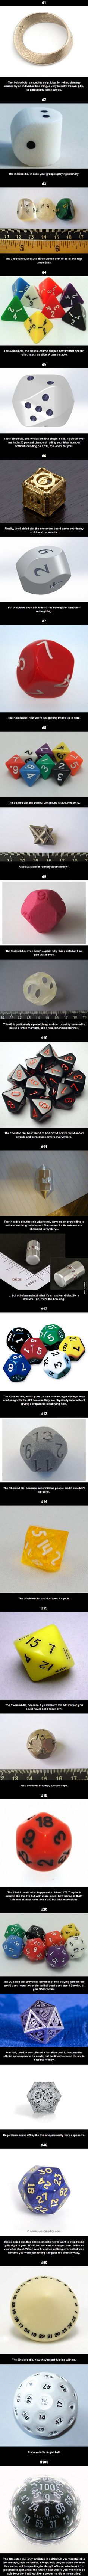 The Wonderful World of dice. -og fordi jeg elsker at smadre pinterest med kilometerlange pins :)